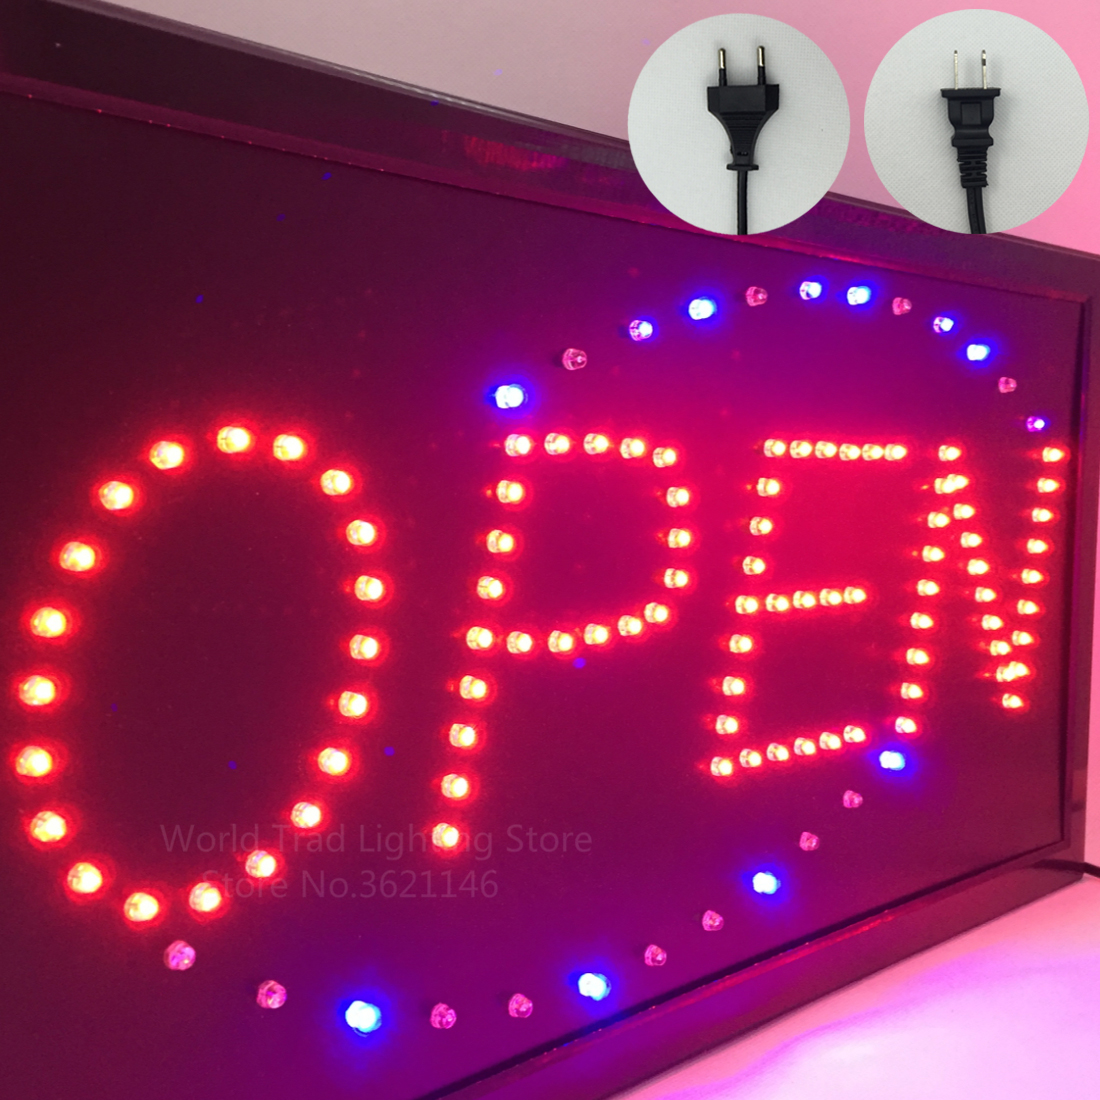 LED store Open sign Logo Advertising Light Board Shopping Mall Bright Animated Motion Neon Business Store Billboard US EU Plug-in Advertising Lights from Lights & Lighting on